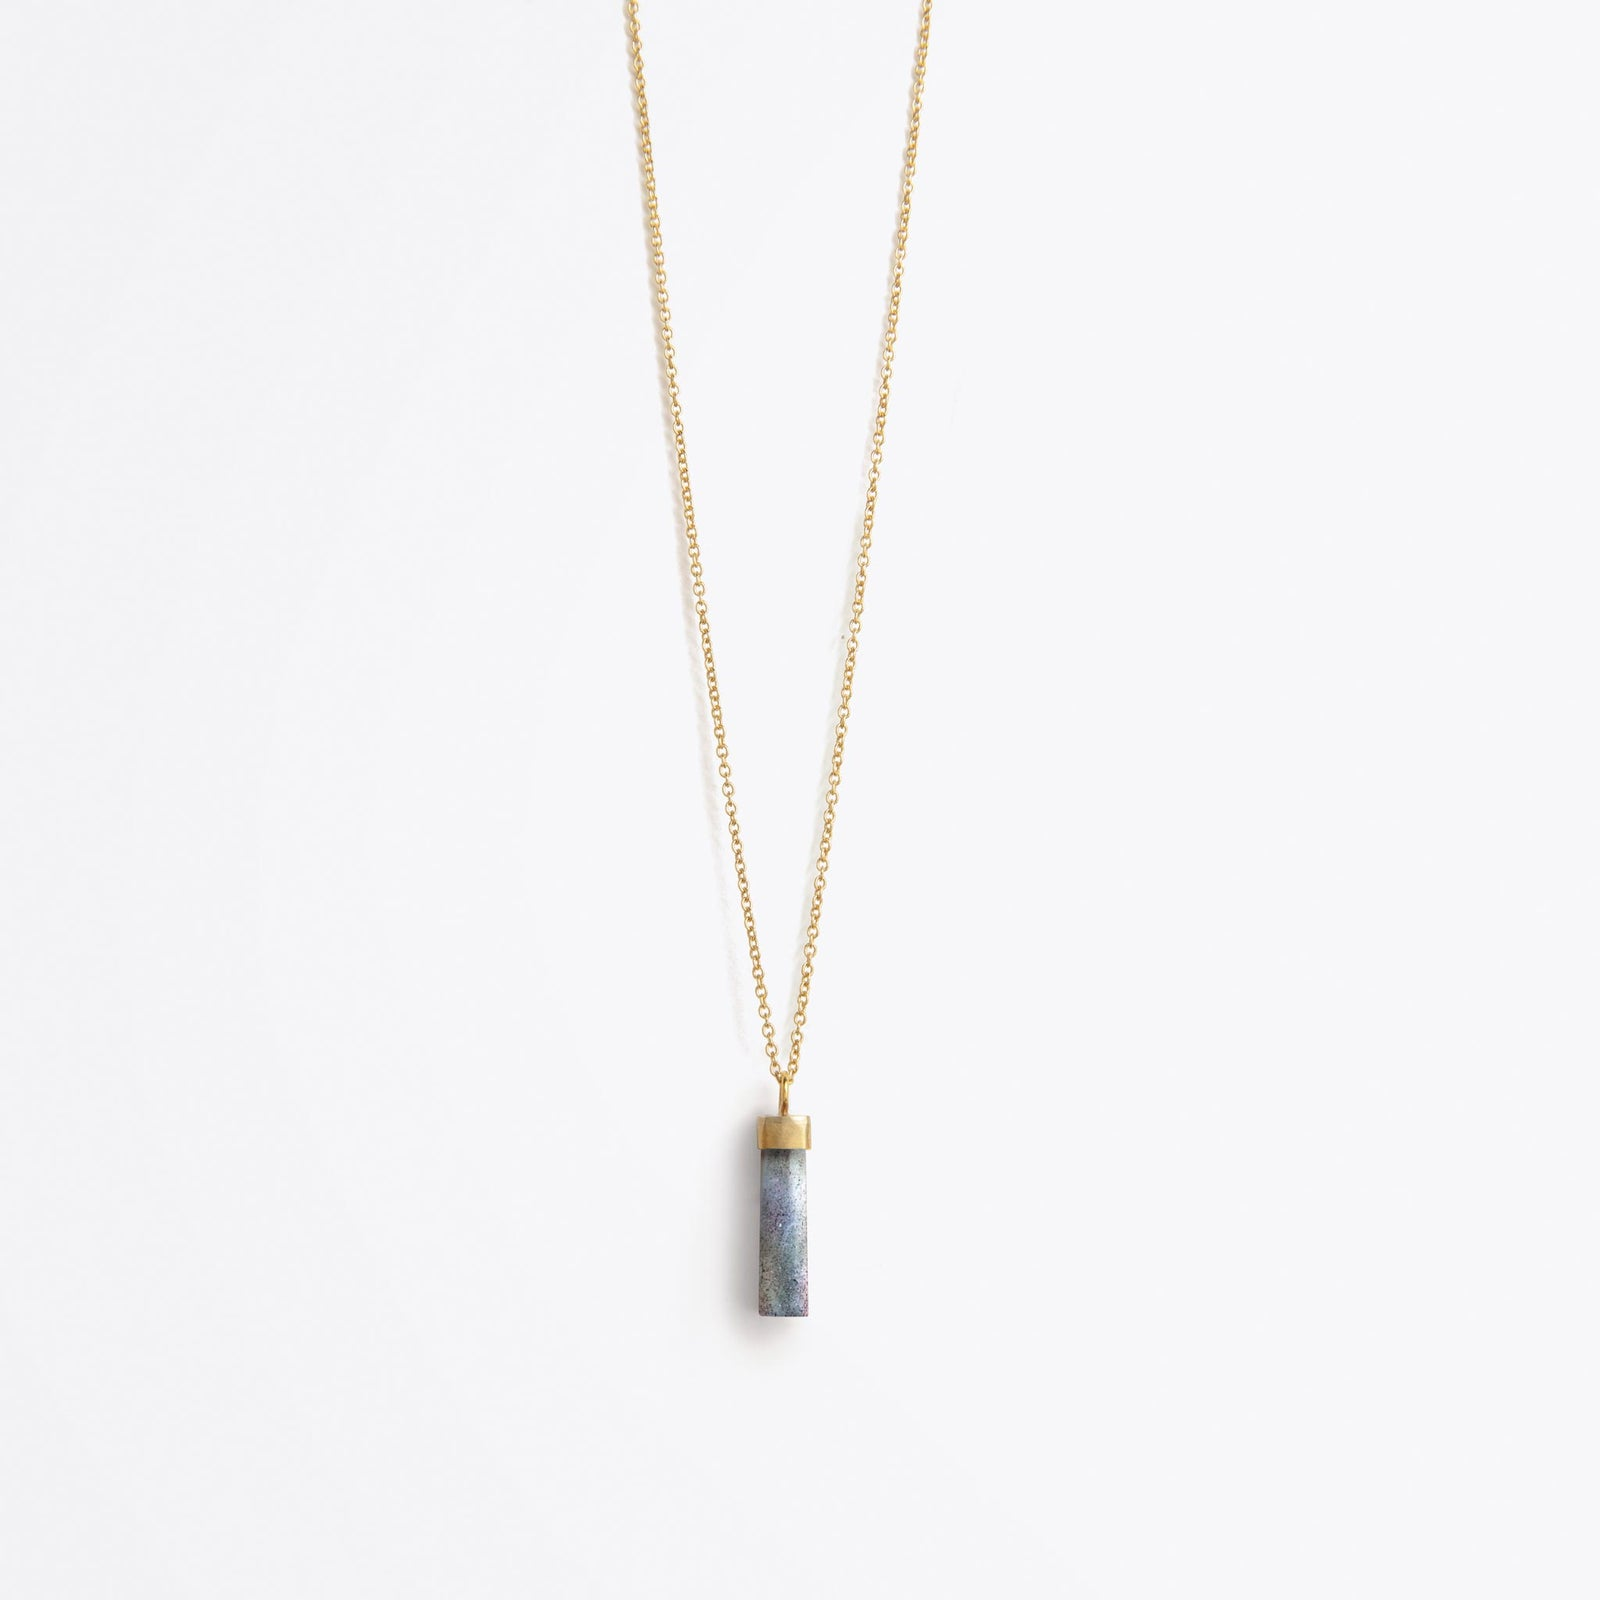 talisman gold chain necklace | iridescent labradorite